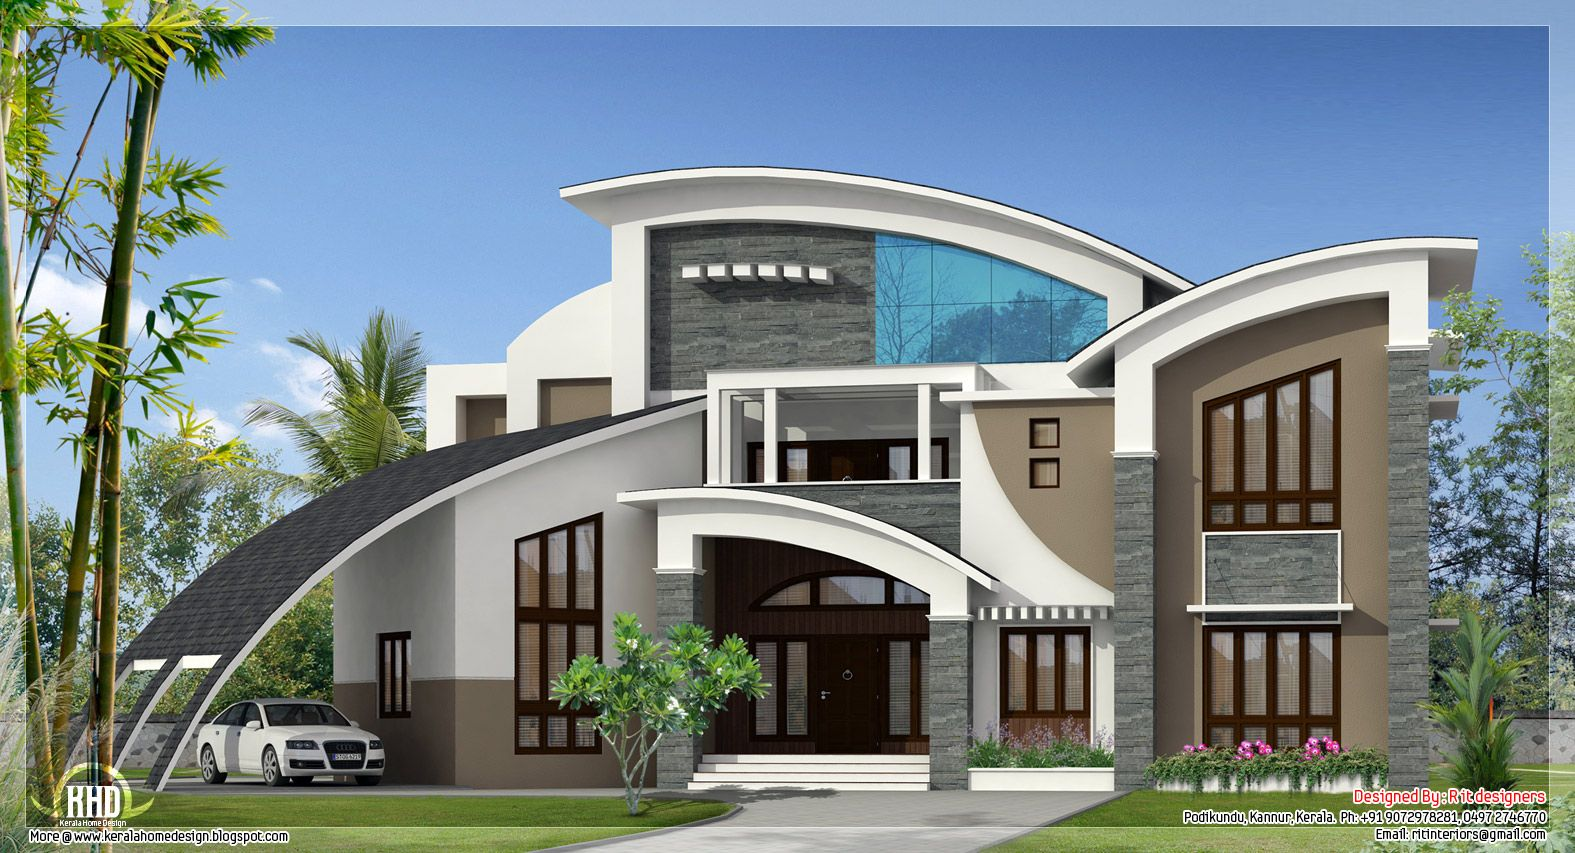 Inspiring Luxury Home Plan 12 Unique Home Designs House Plans Kerala House Design Unique Houses Unique House Design